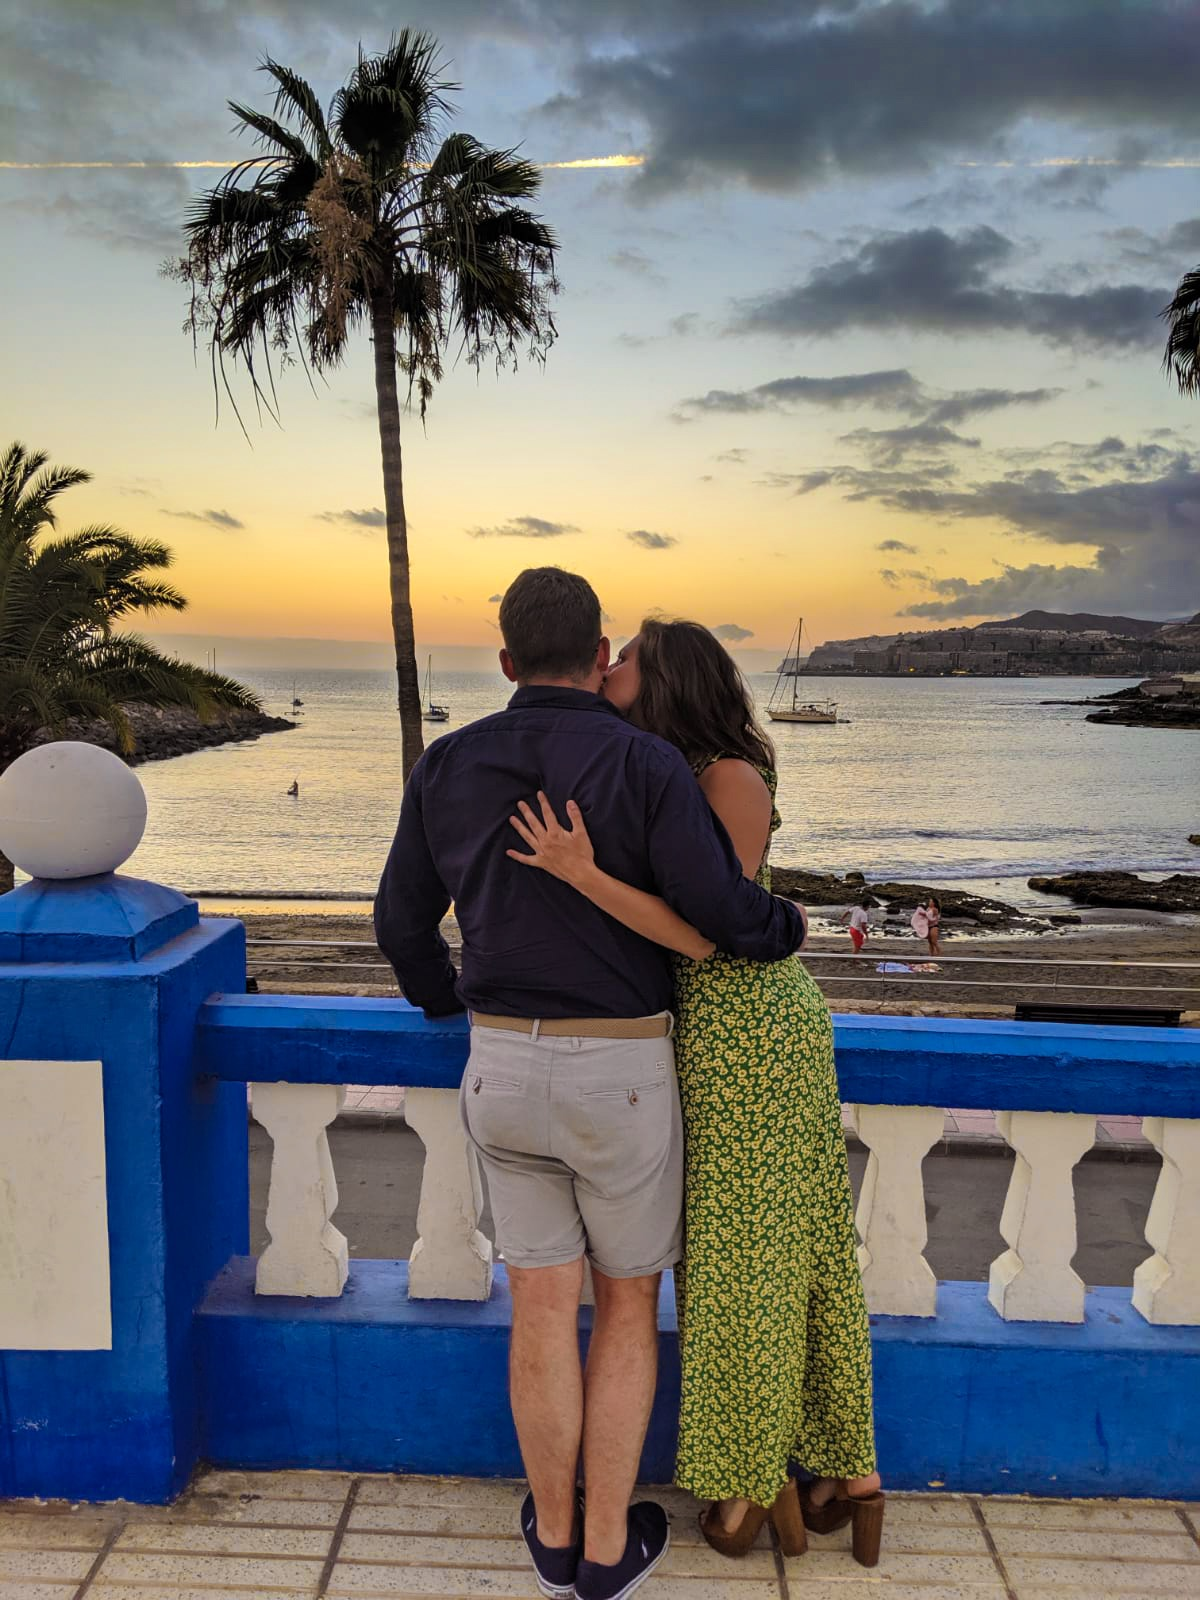 A girl in bright green and yellow dress kissing her boyfriend in the cheek and watching the sun set over the sea in Arguineguin in Gran Canaria